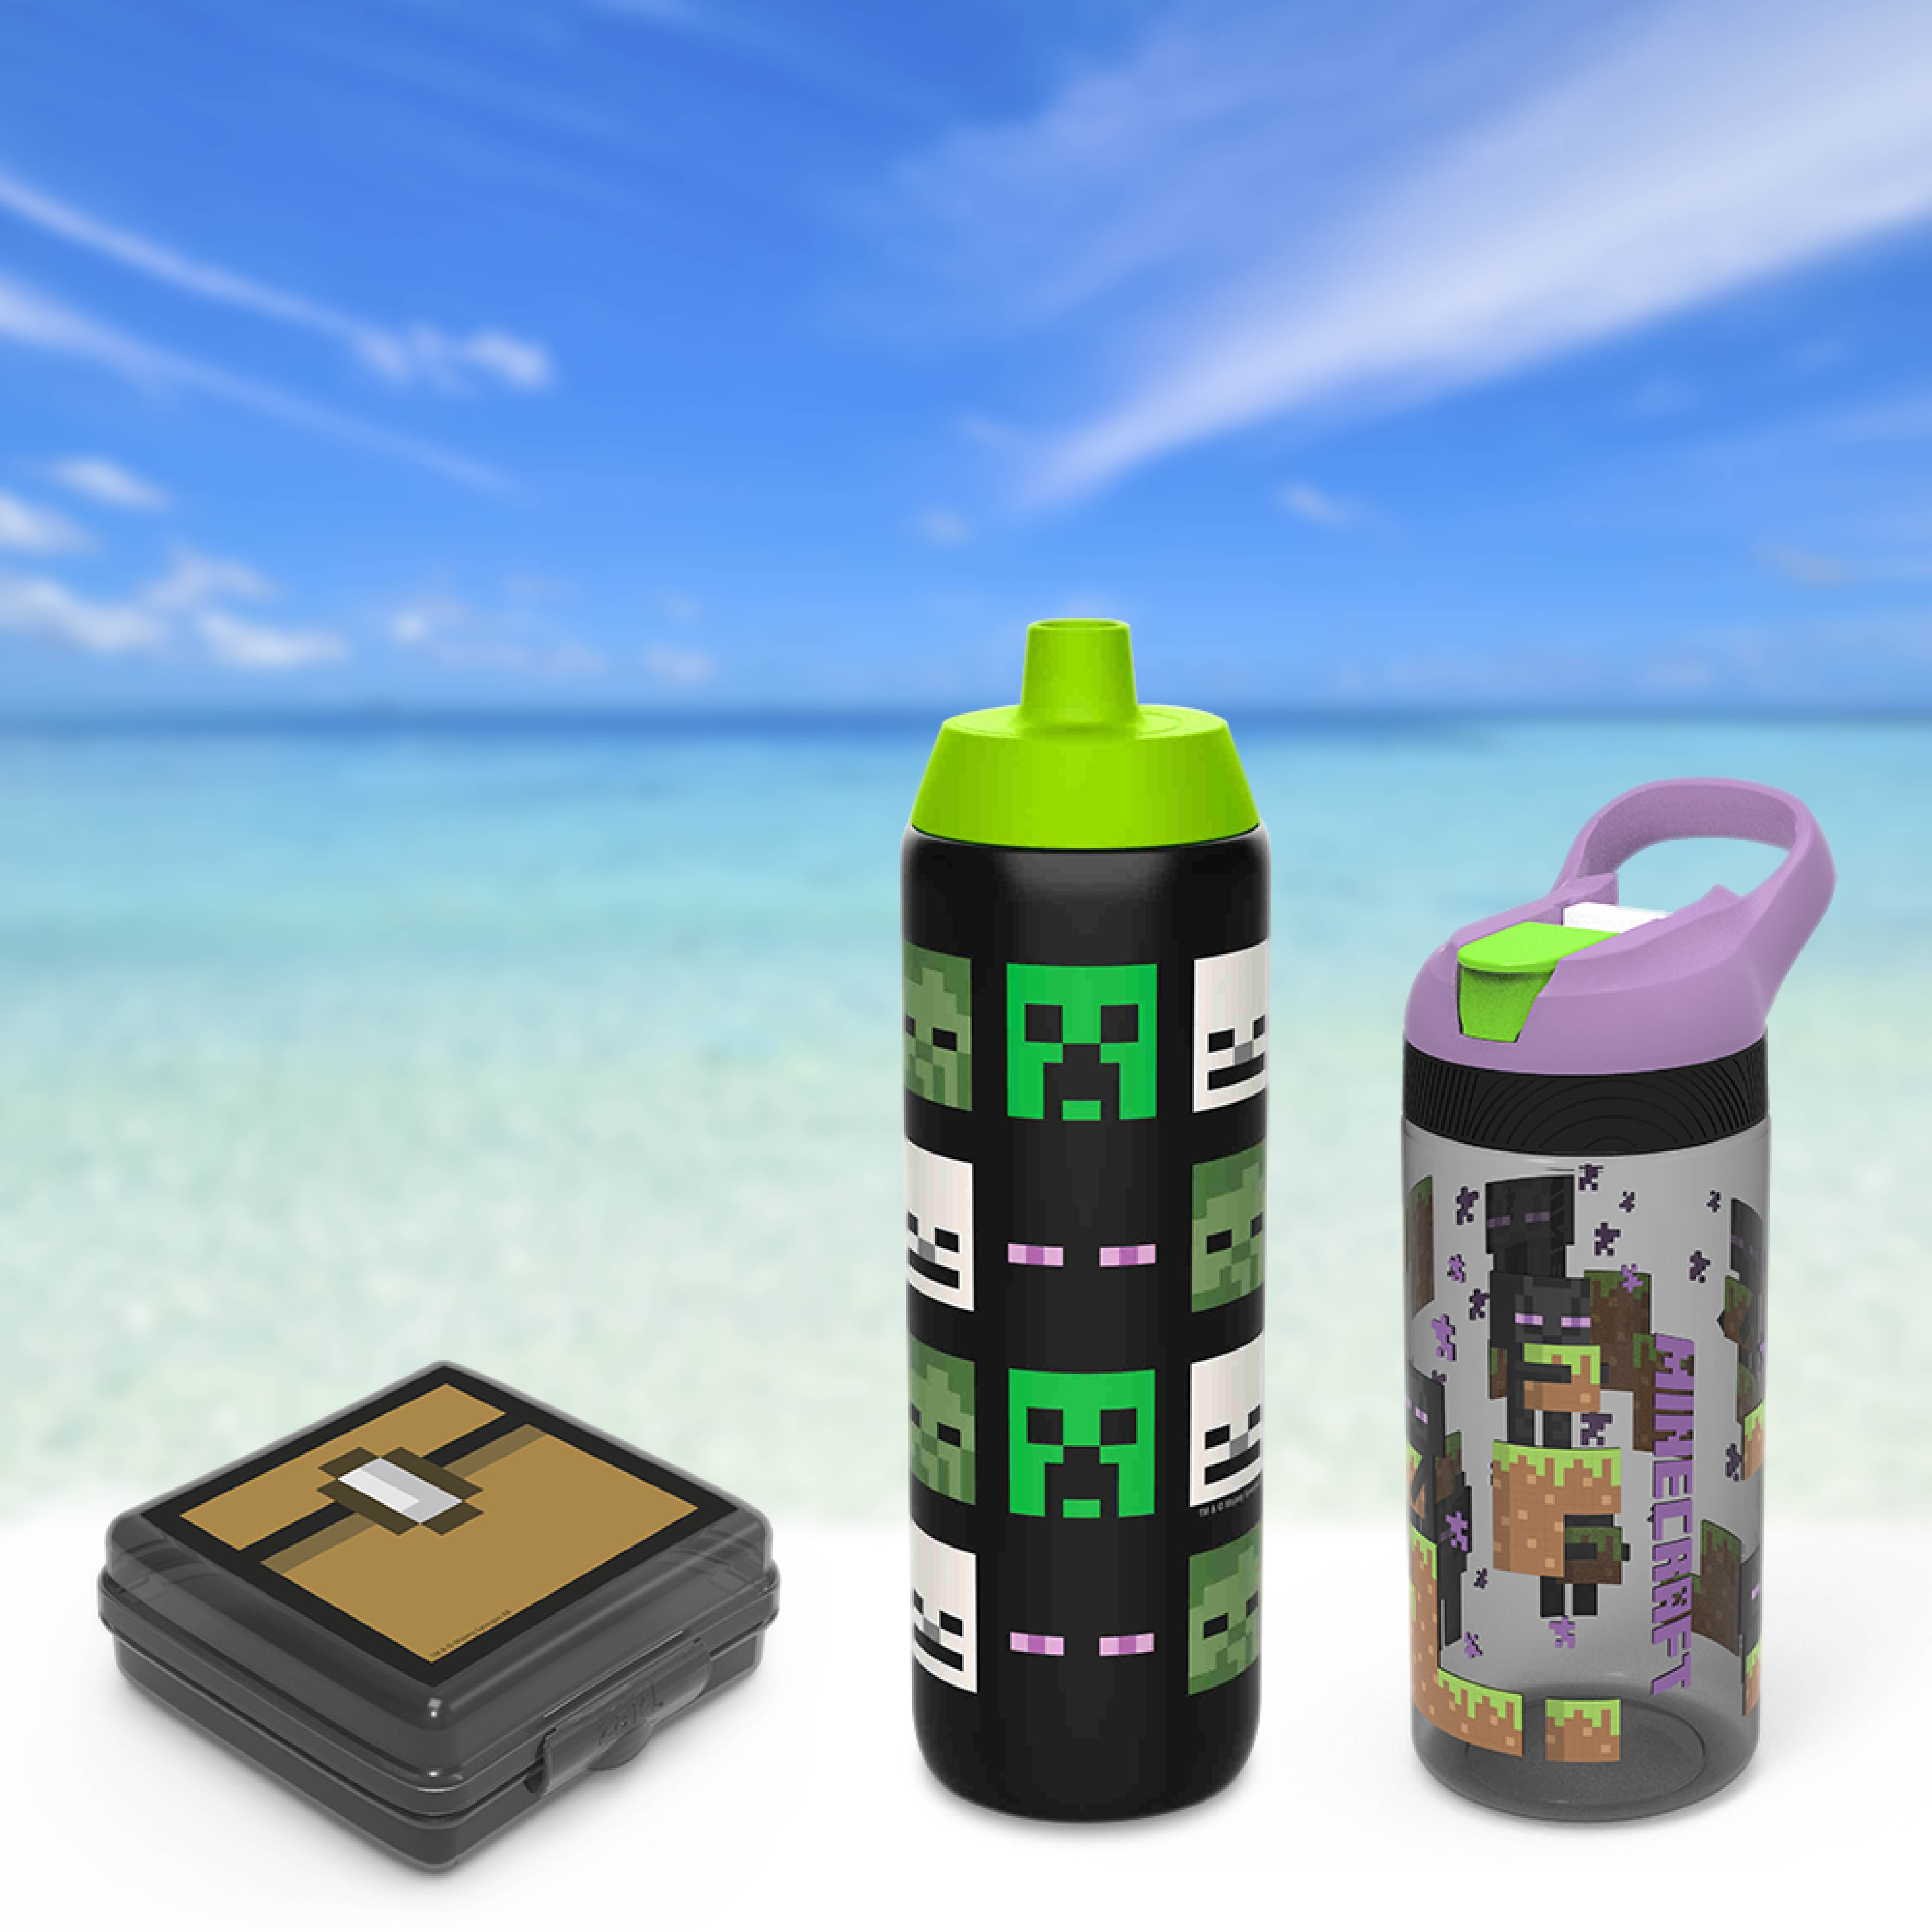 Minecraft Kid's Water Bottle and Sandwich Container Lunch Set, Steve and Alex, 2-piece set slideshow image 10